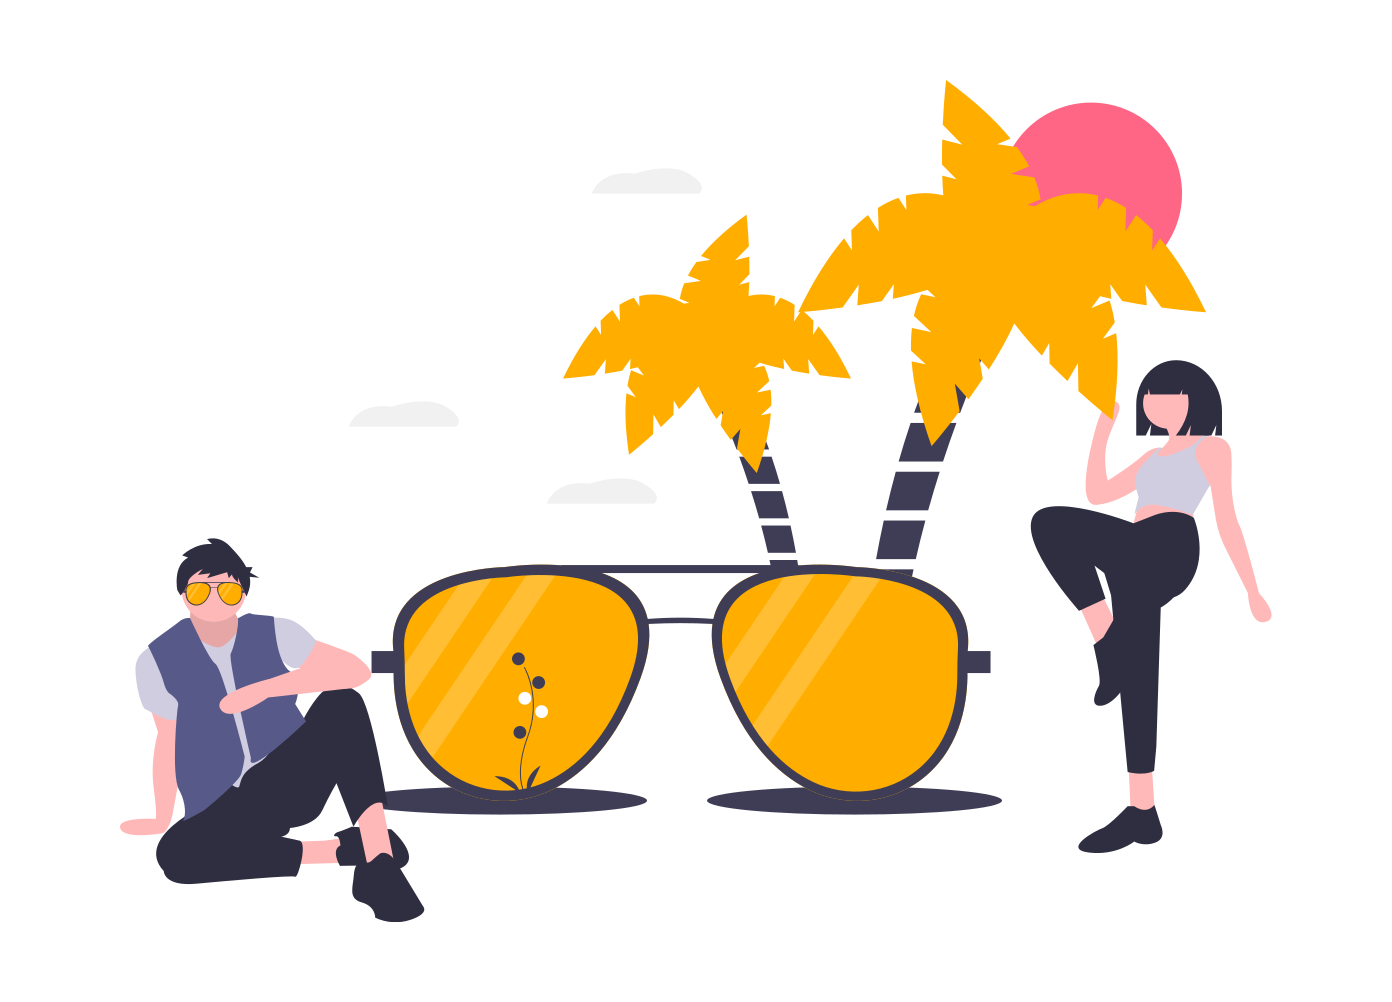 Drawing of 2 People in sunglasses